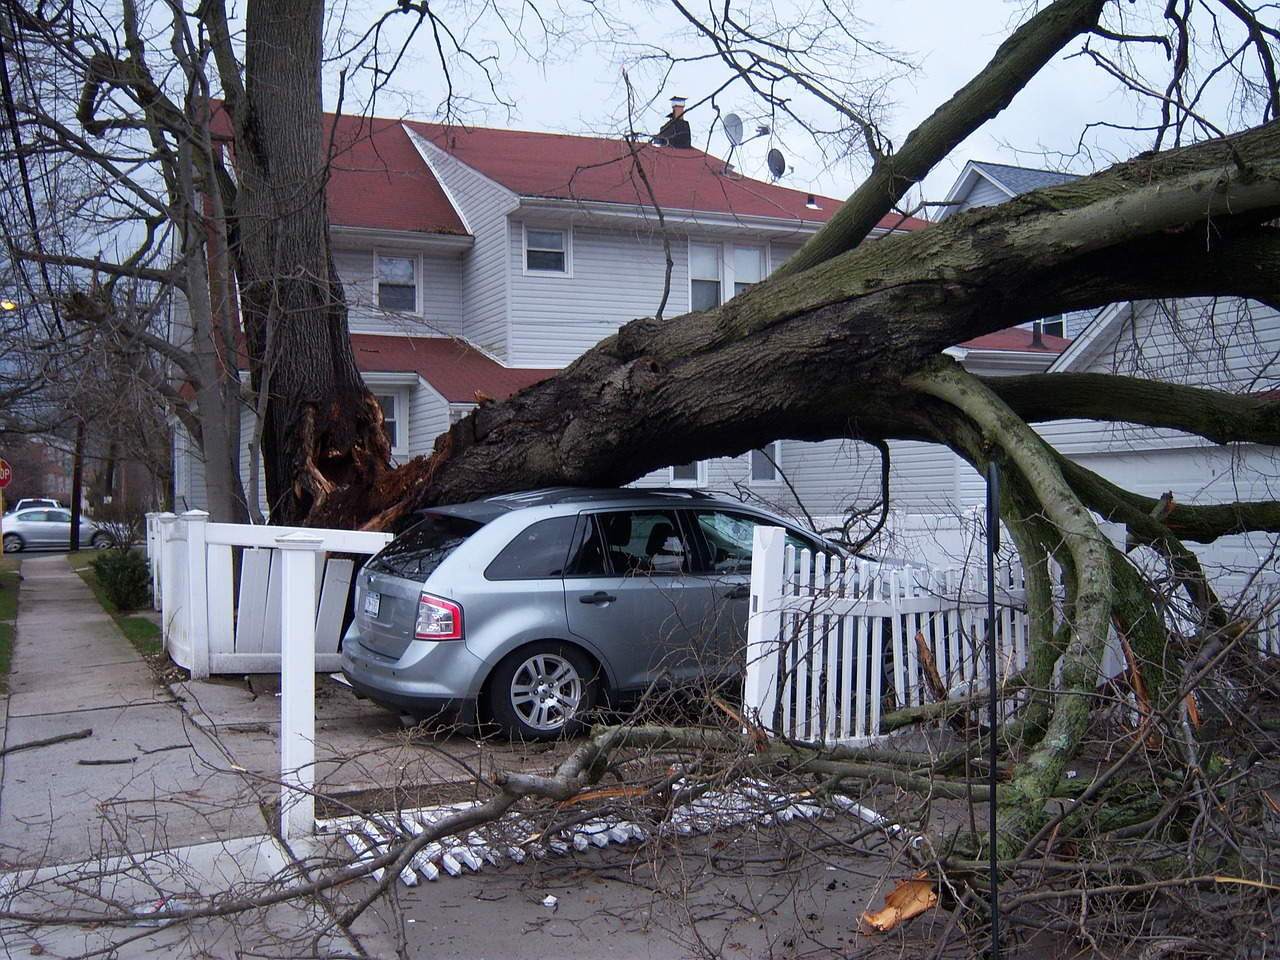 Storm Damage Photo by reslmaier on Pixabay https://pixabay.com/en/storm-damage-hurricane-wind-843732/